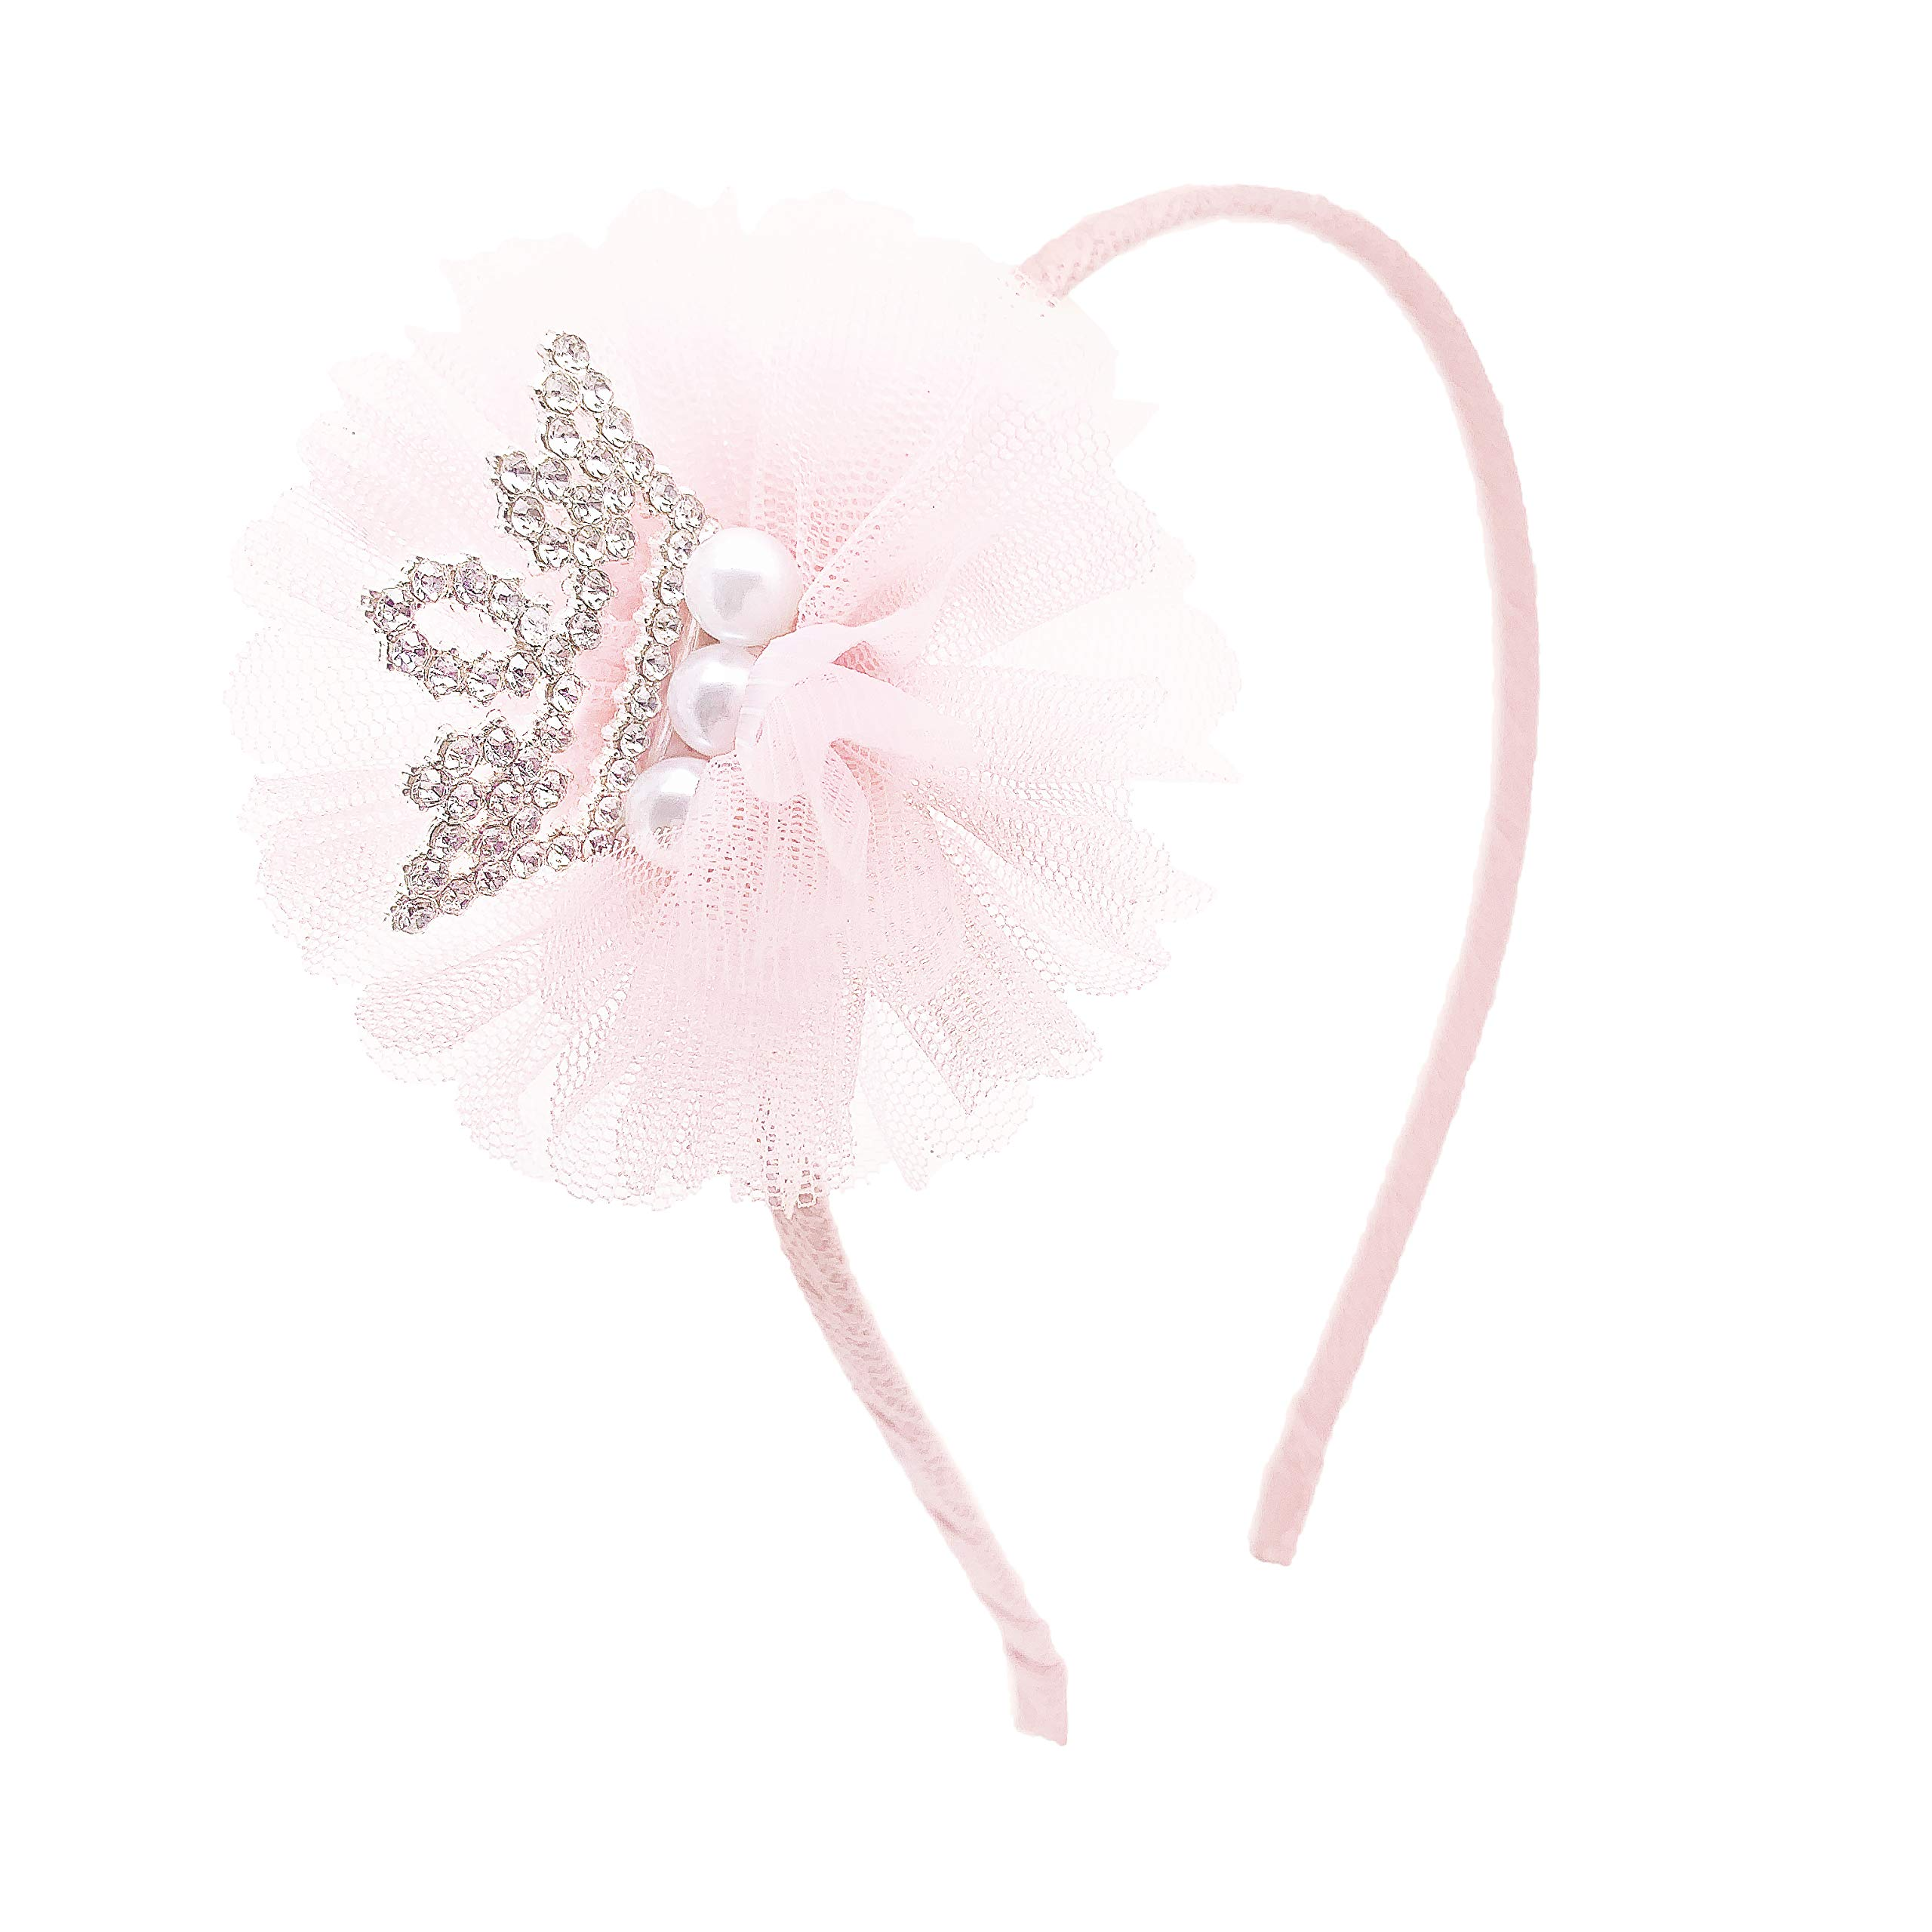 """Premium 3"""" Girls Crown Tiara and Pearls Headband Accessories Unique Cute and Handmade for Formal or Casual Dresses and Outfits with Luxurious Tulle and Rhinestones by Ecluv (Light Baby Pink)"""